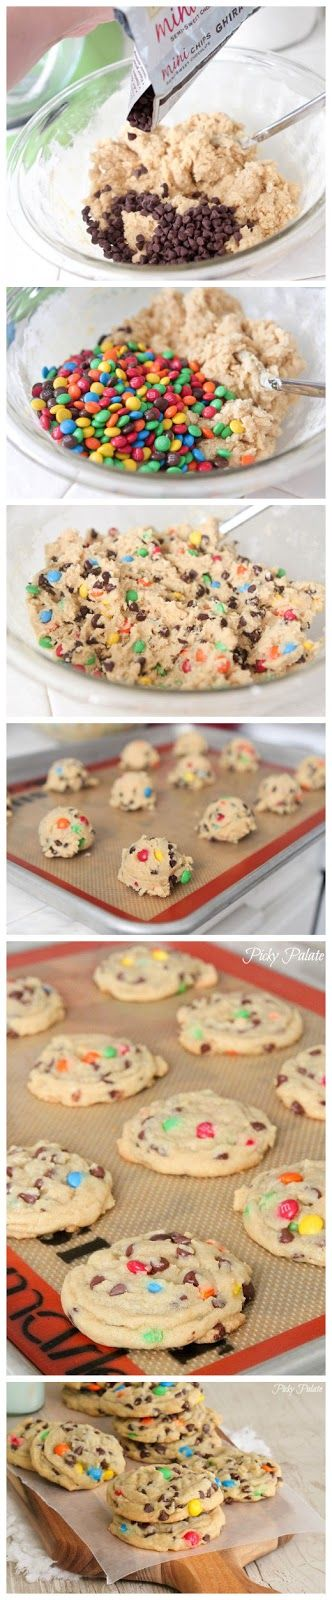 Ingredients:   1 stick/1/2 cup unsalted butter, softened  1/2 cup granulated sugar  1/2 cup packed light brown sugar  1 large egg  1/2 te...